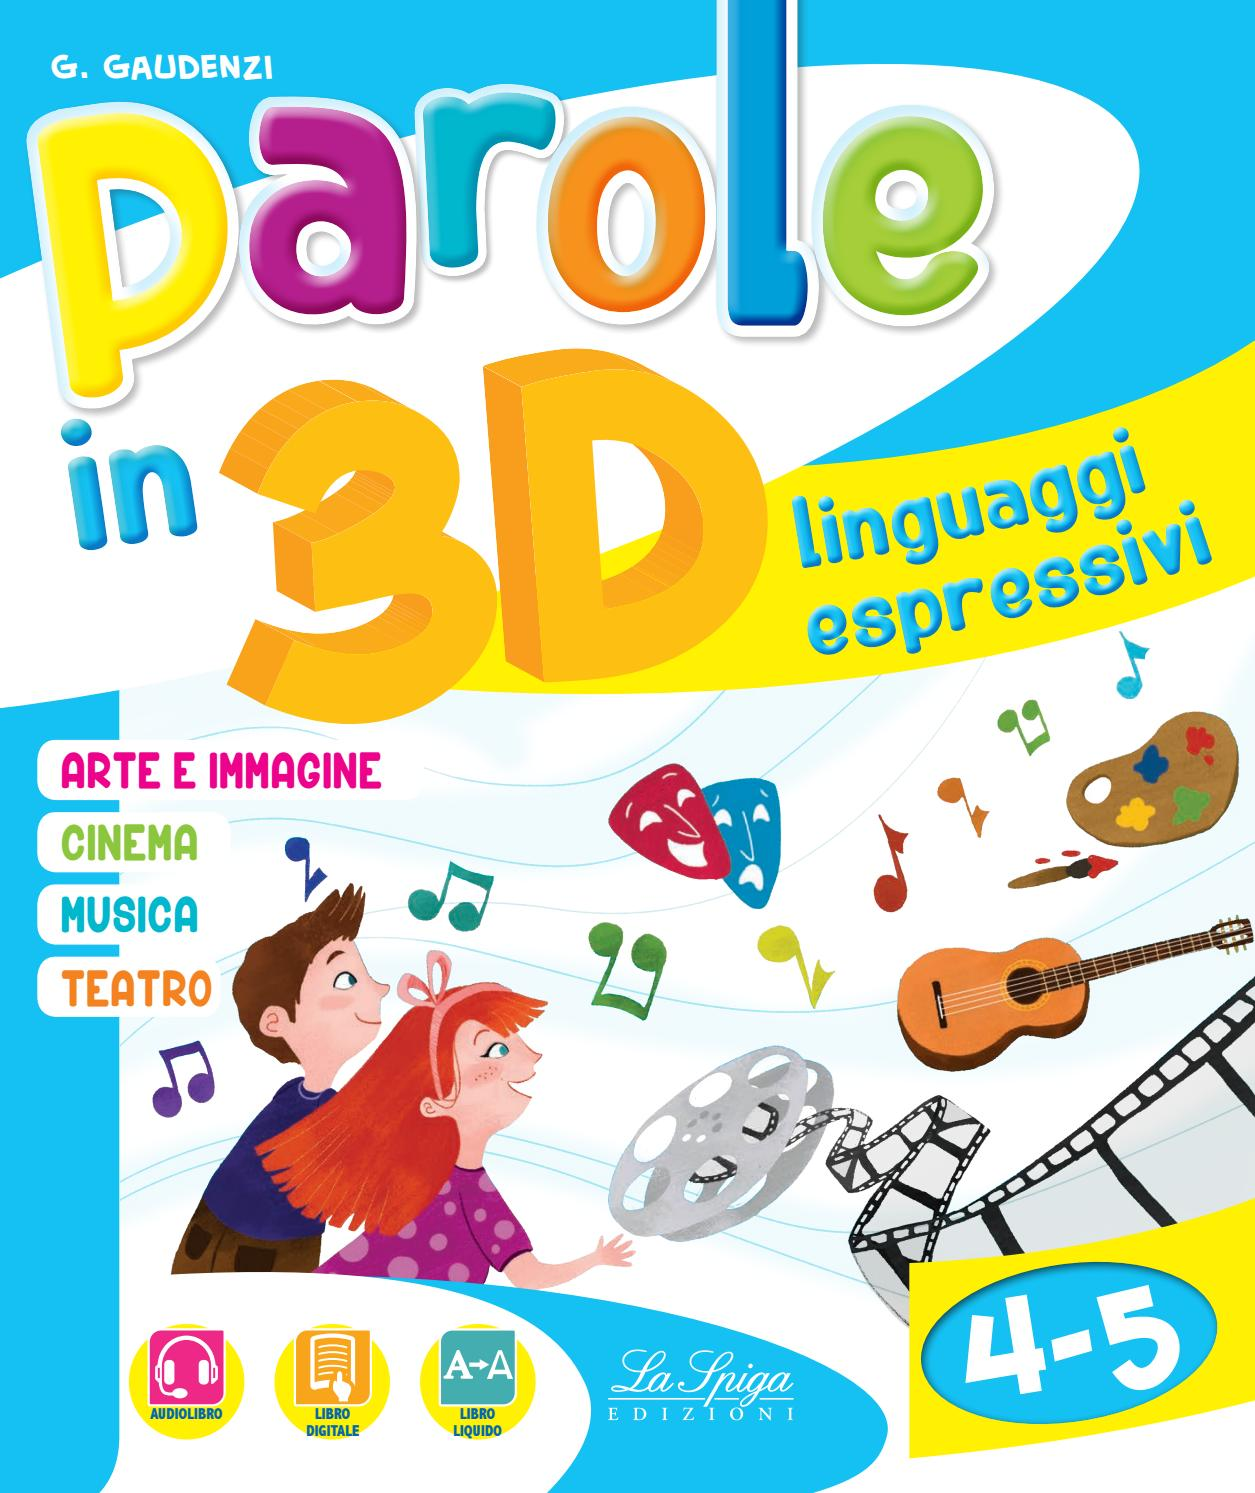 Parole In 3d Linguaggi Espressivi 4 5 By Eli Publishing Issuu